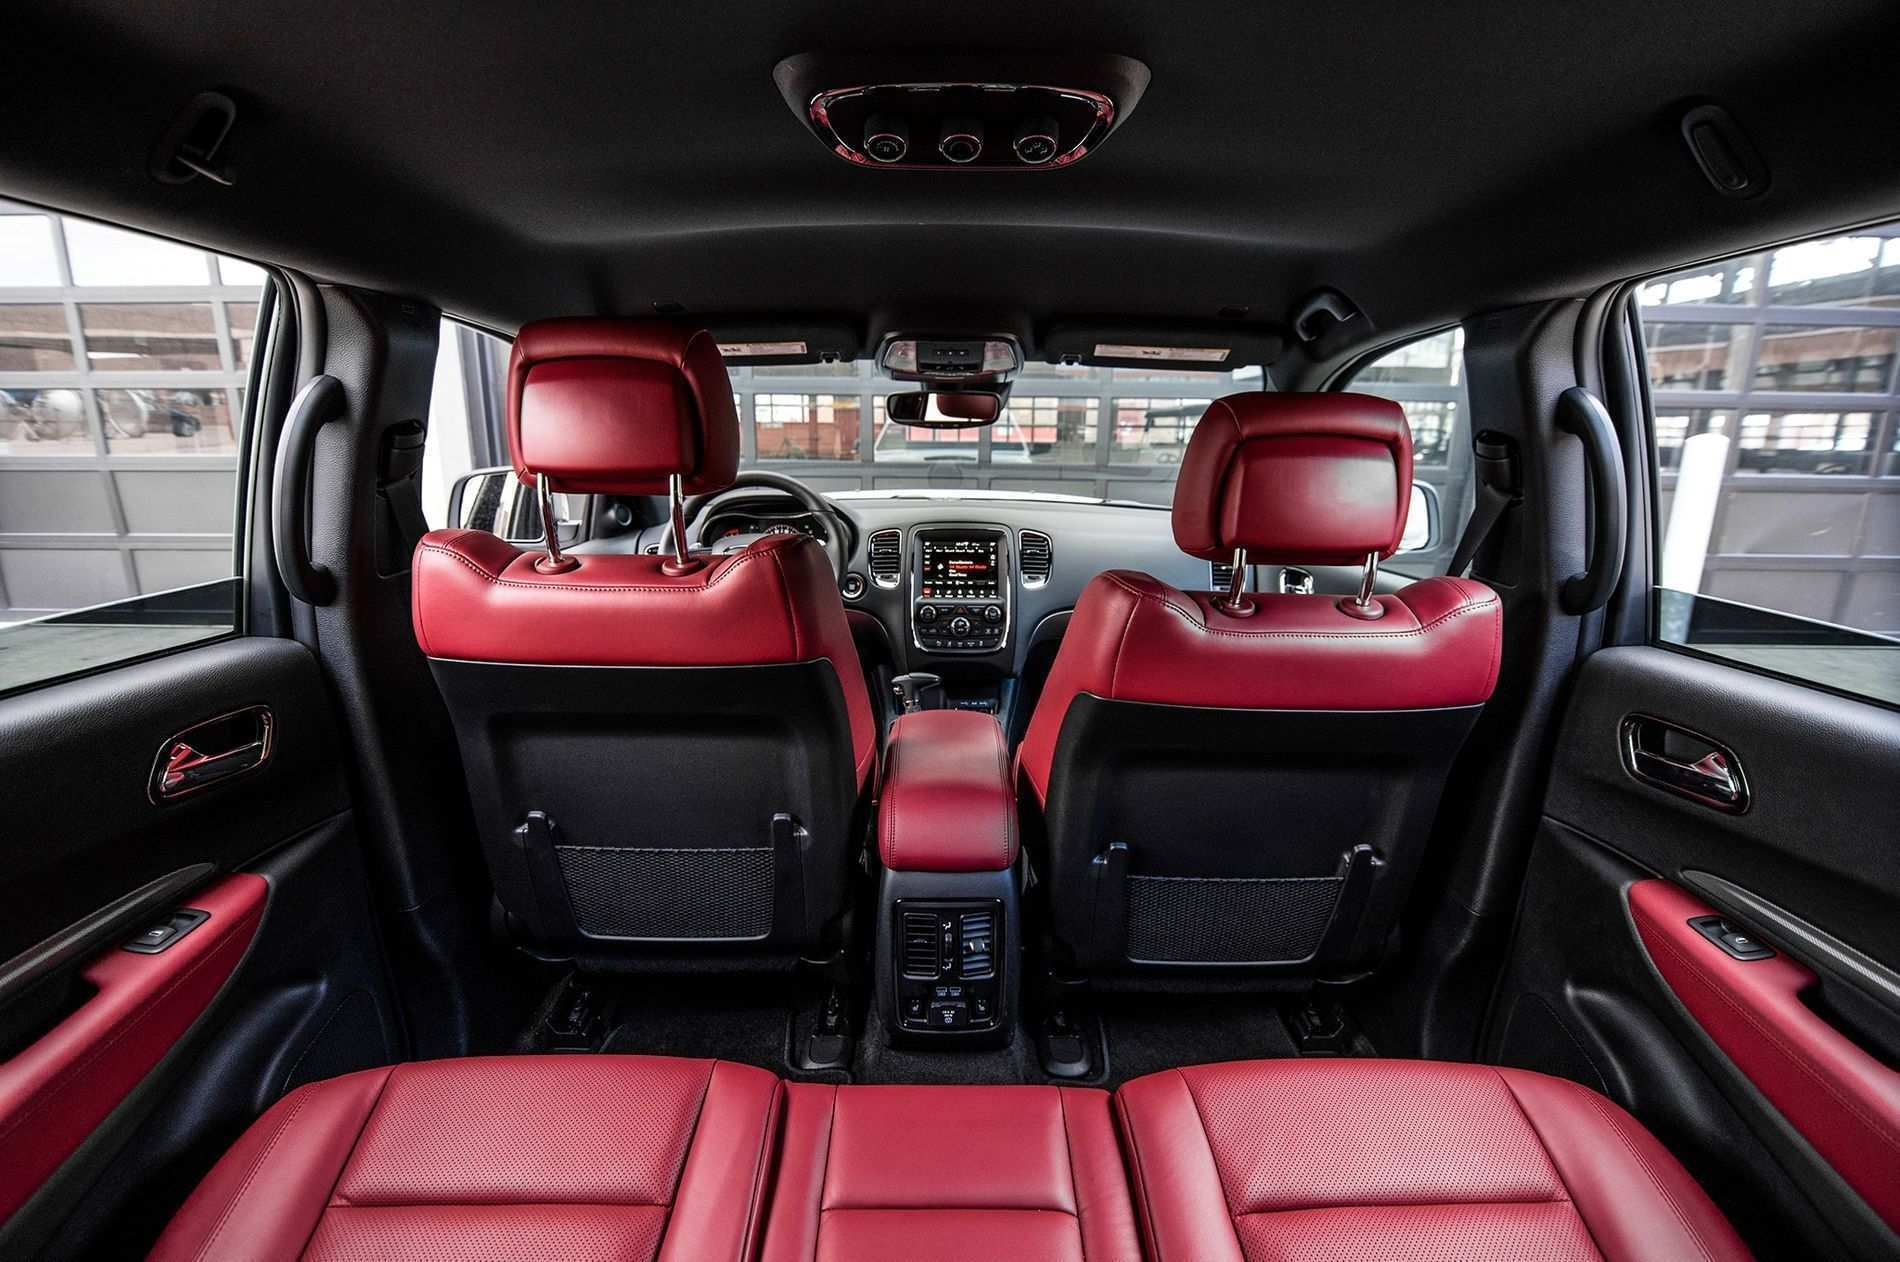 77 All New 2020 Dodge Durango Interior Performance And New Engine